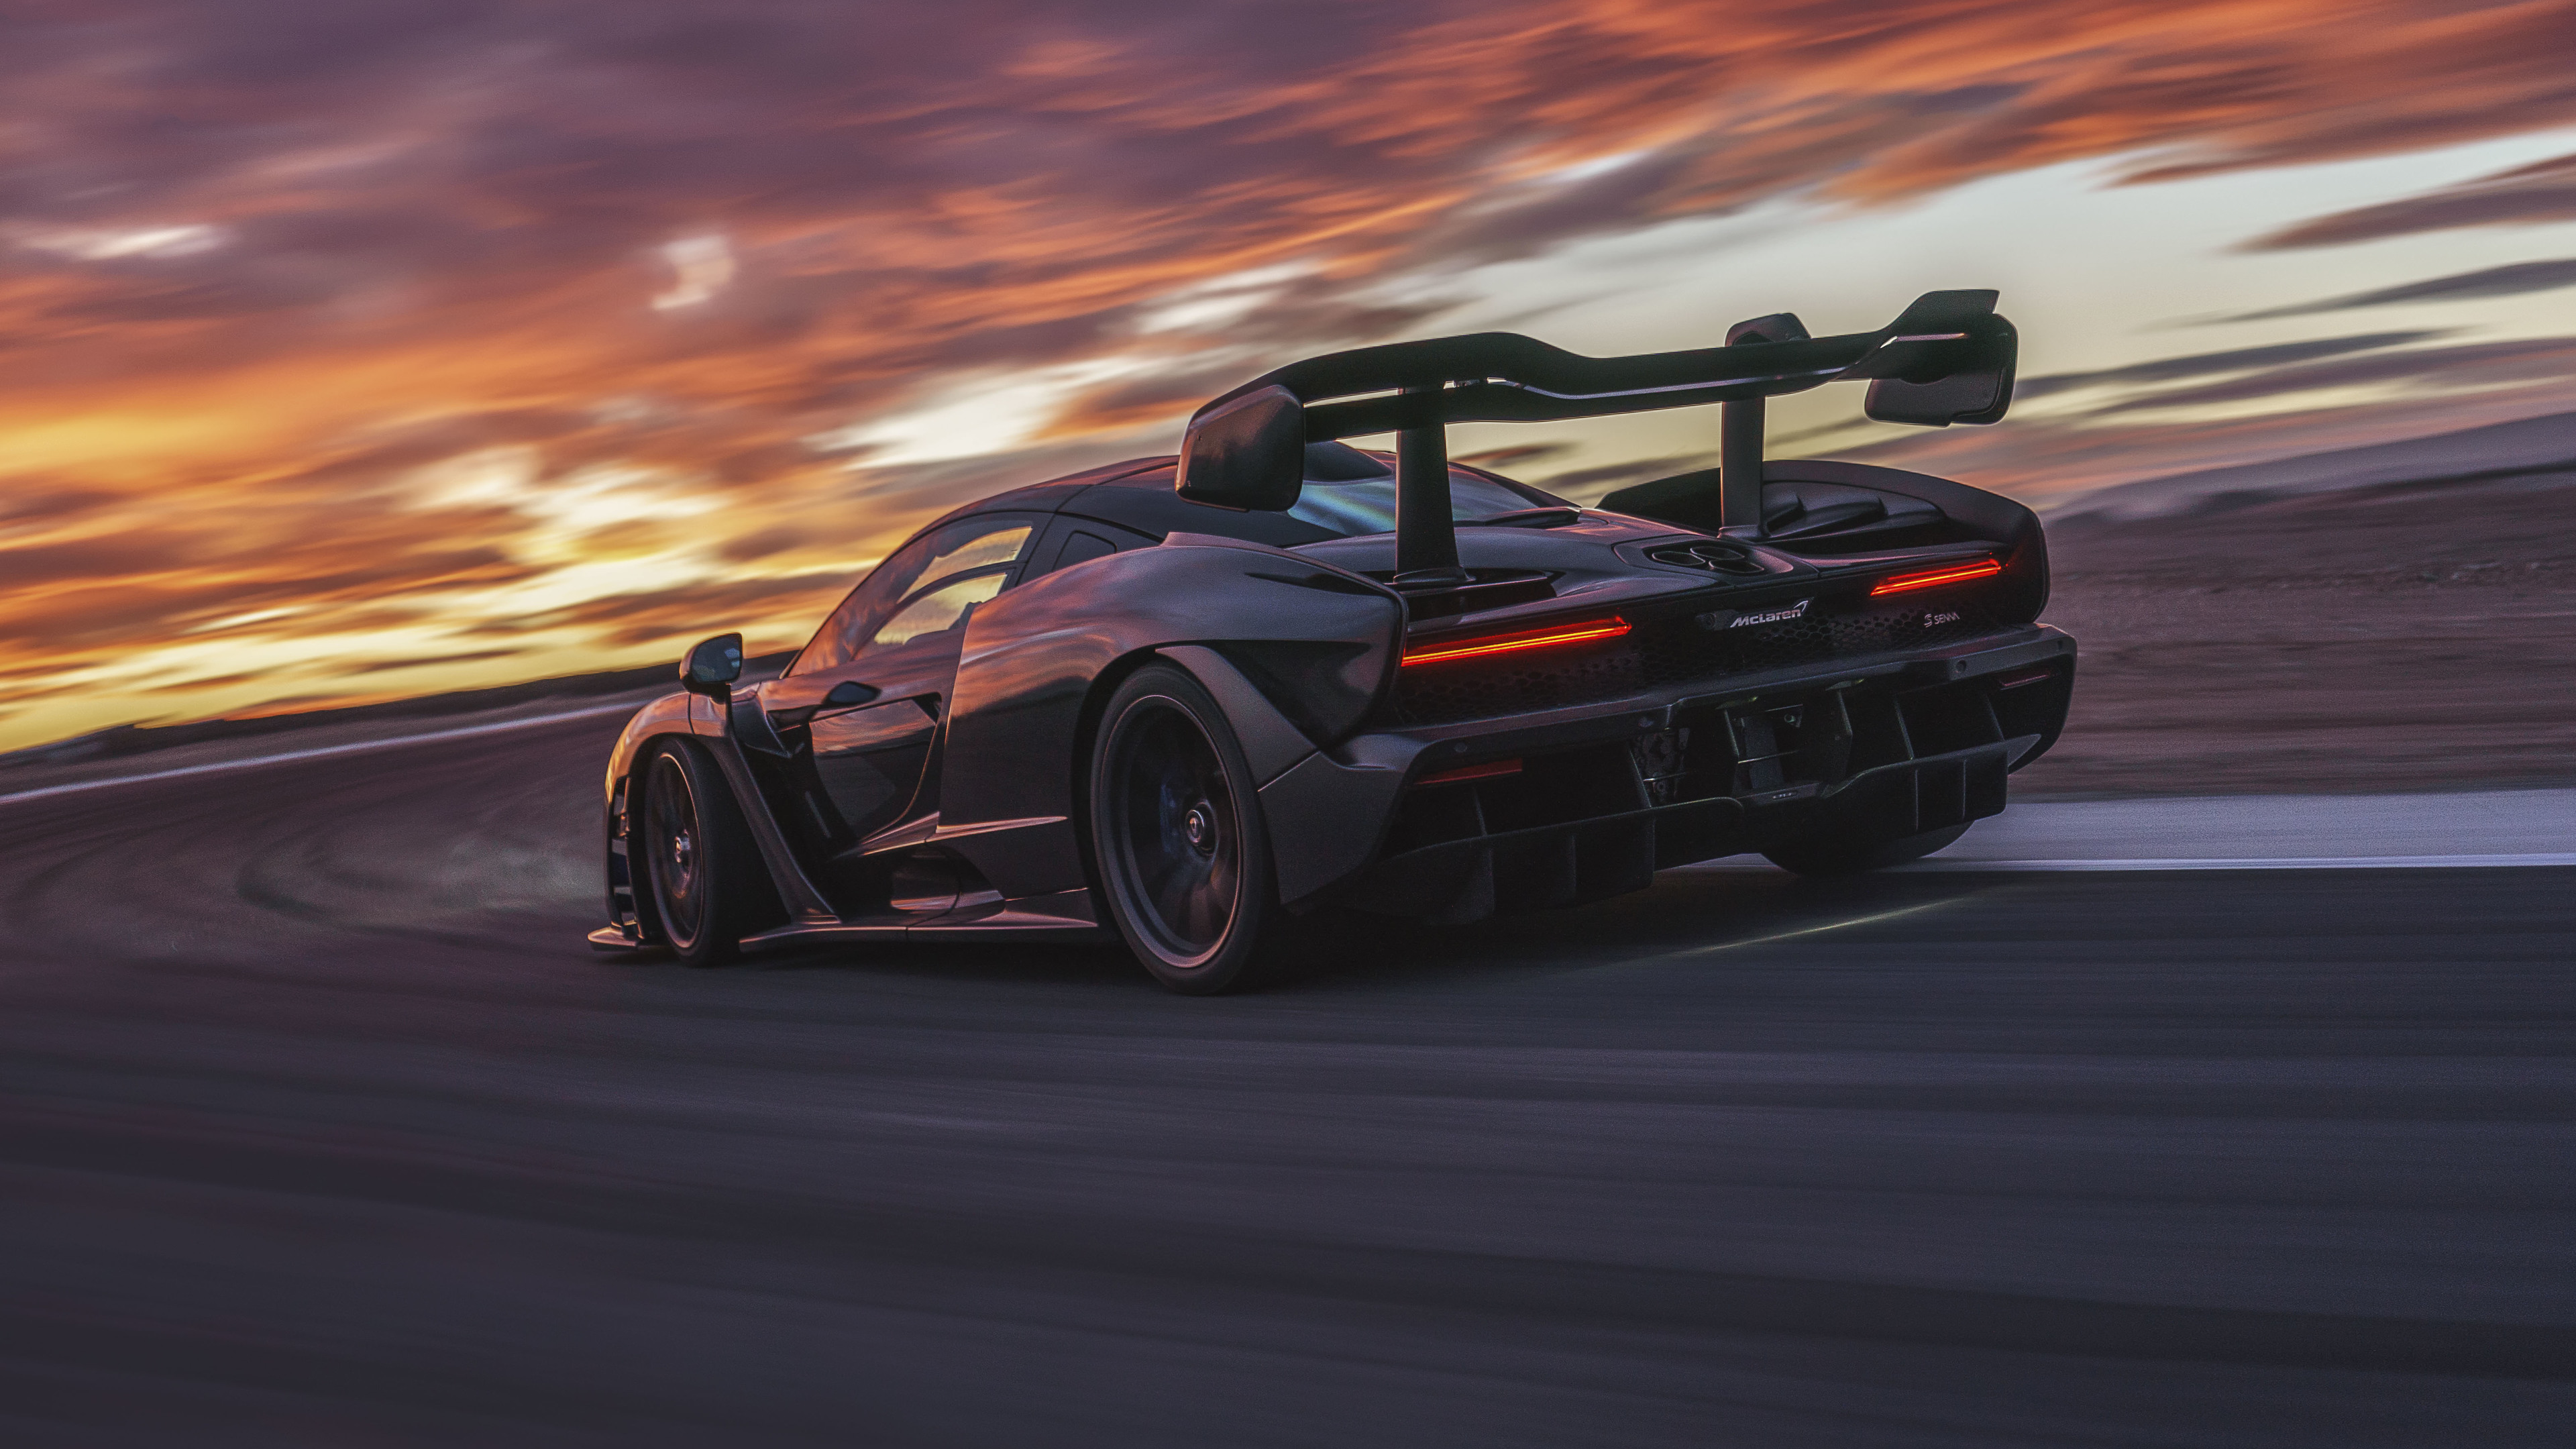 mclaren senna 5k 2019 rear 4k 1547936902 - Mclaren Senna 5k 2019 Rear 4k - mclaren wallpapers, mclaren senna wallpapers, hd-wallpapers, cars wallpapers, 5k wallpapers, 4k-wallpapers, 2019 cars wallpapers